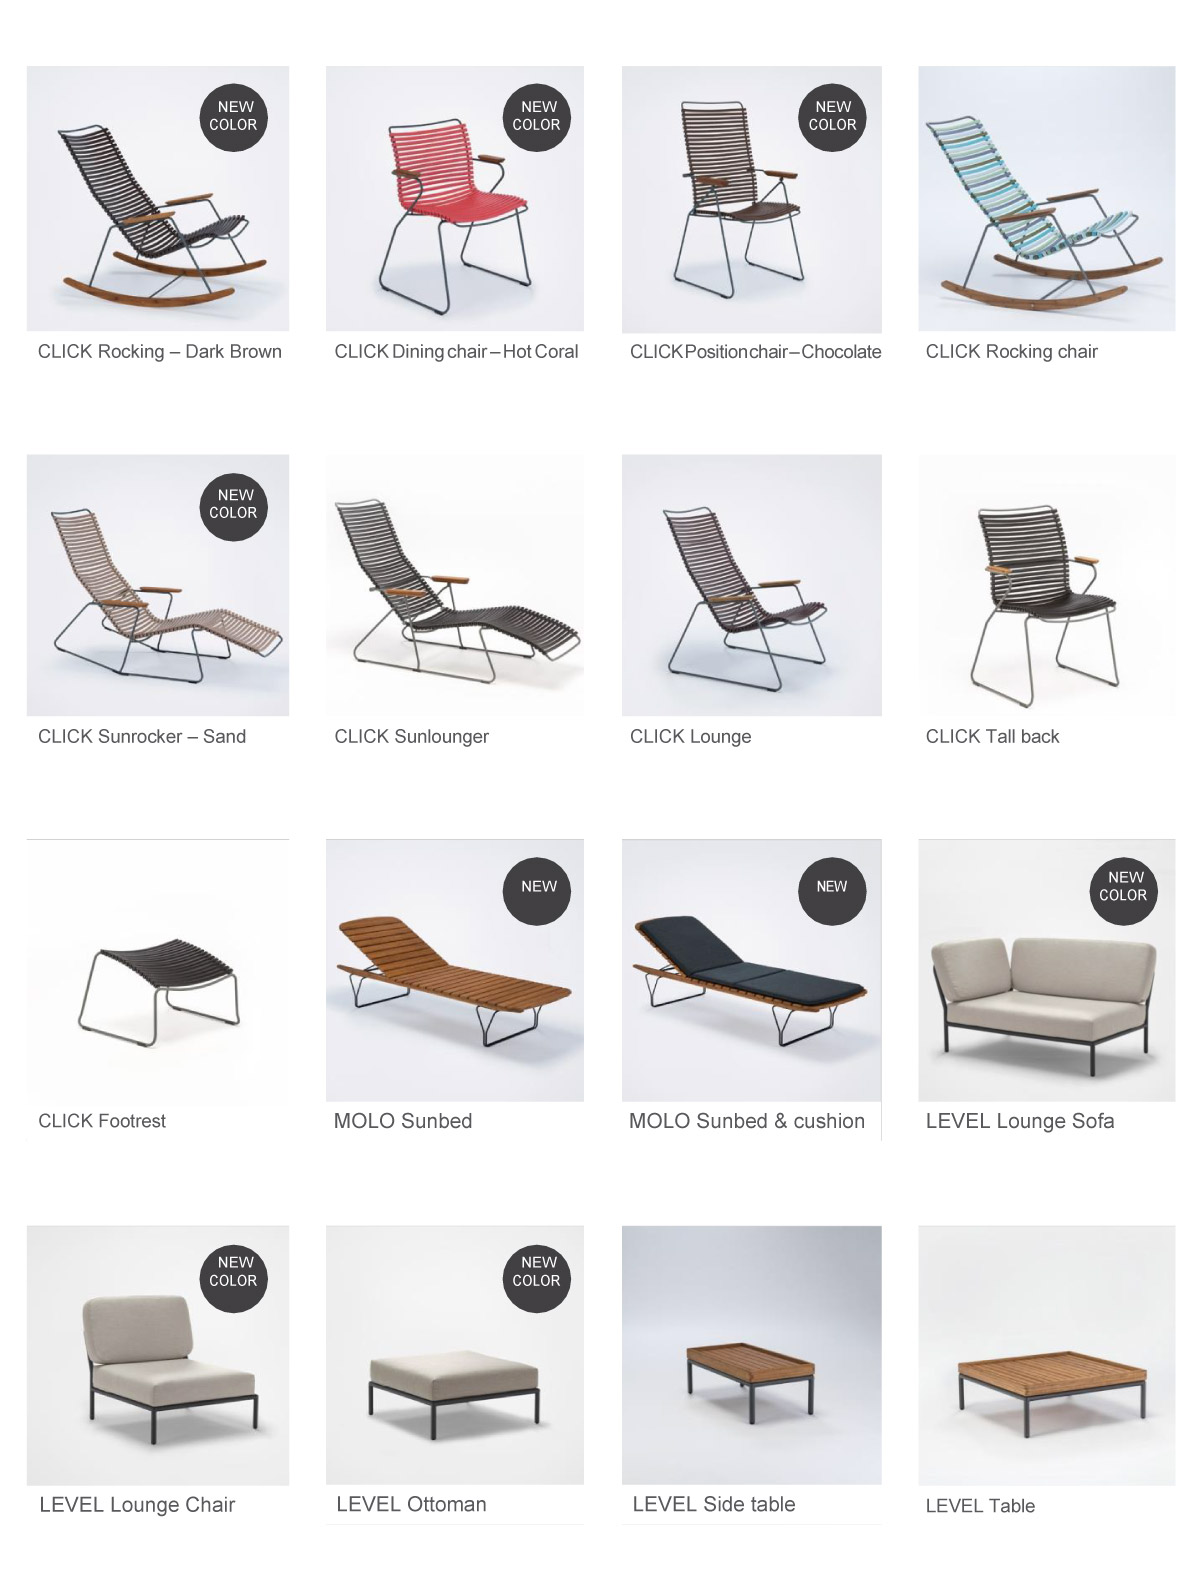 CLICK, MOLO and LEVEL Outdoor Furniture